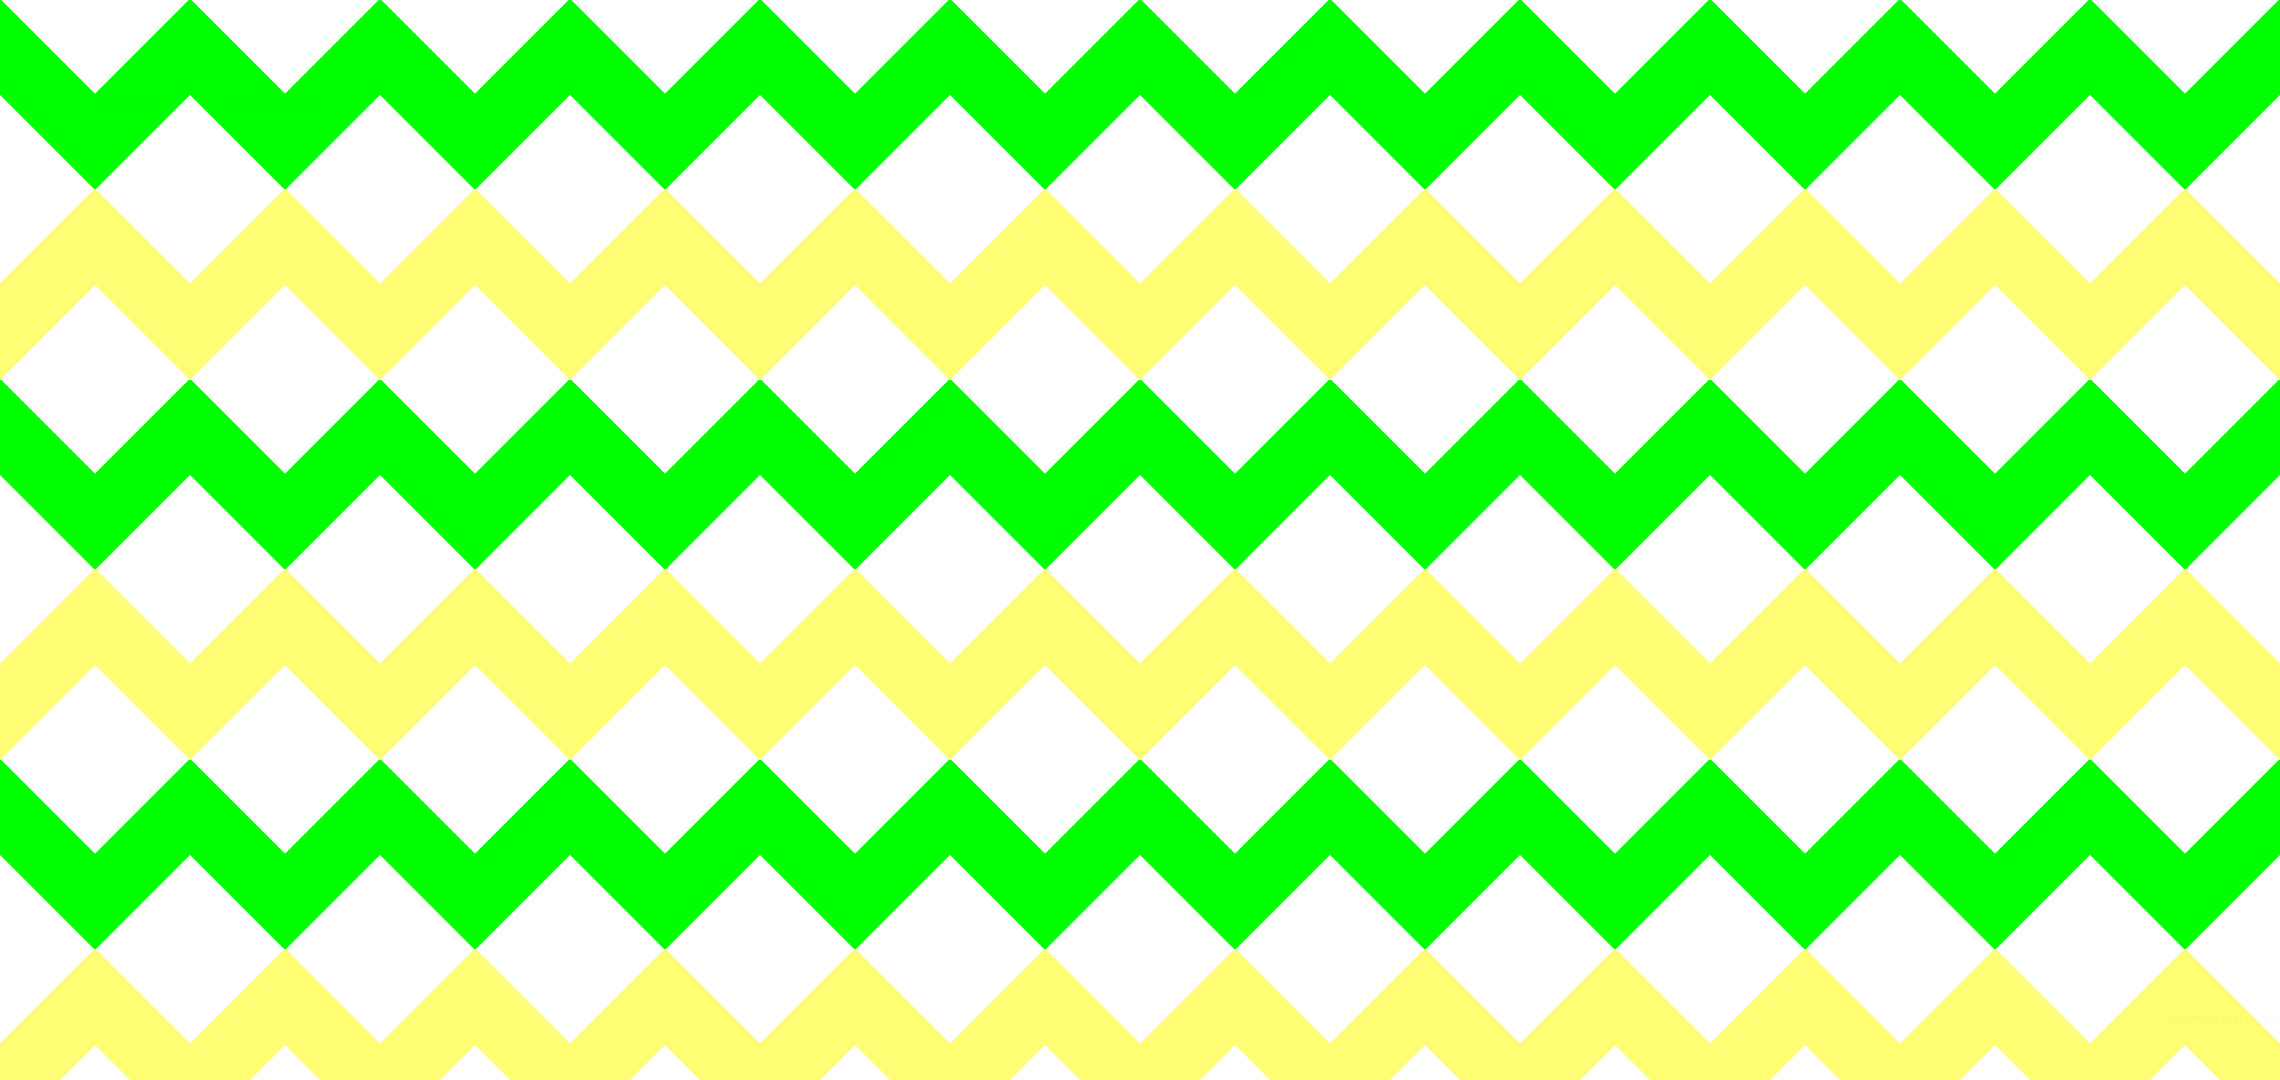 2280x1080 #00FF00 Light Lime Green #FFFD74 Butter Yellow Chevron Stripes White  Background